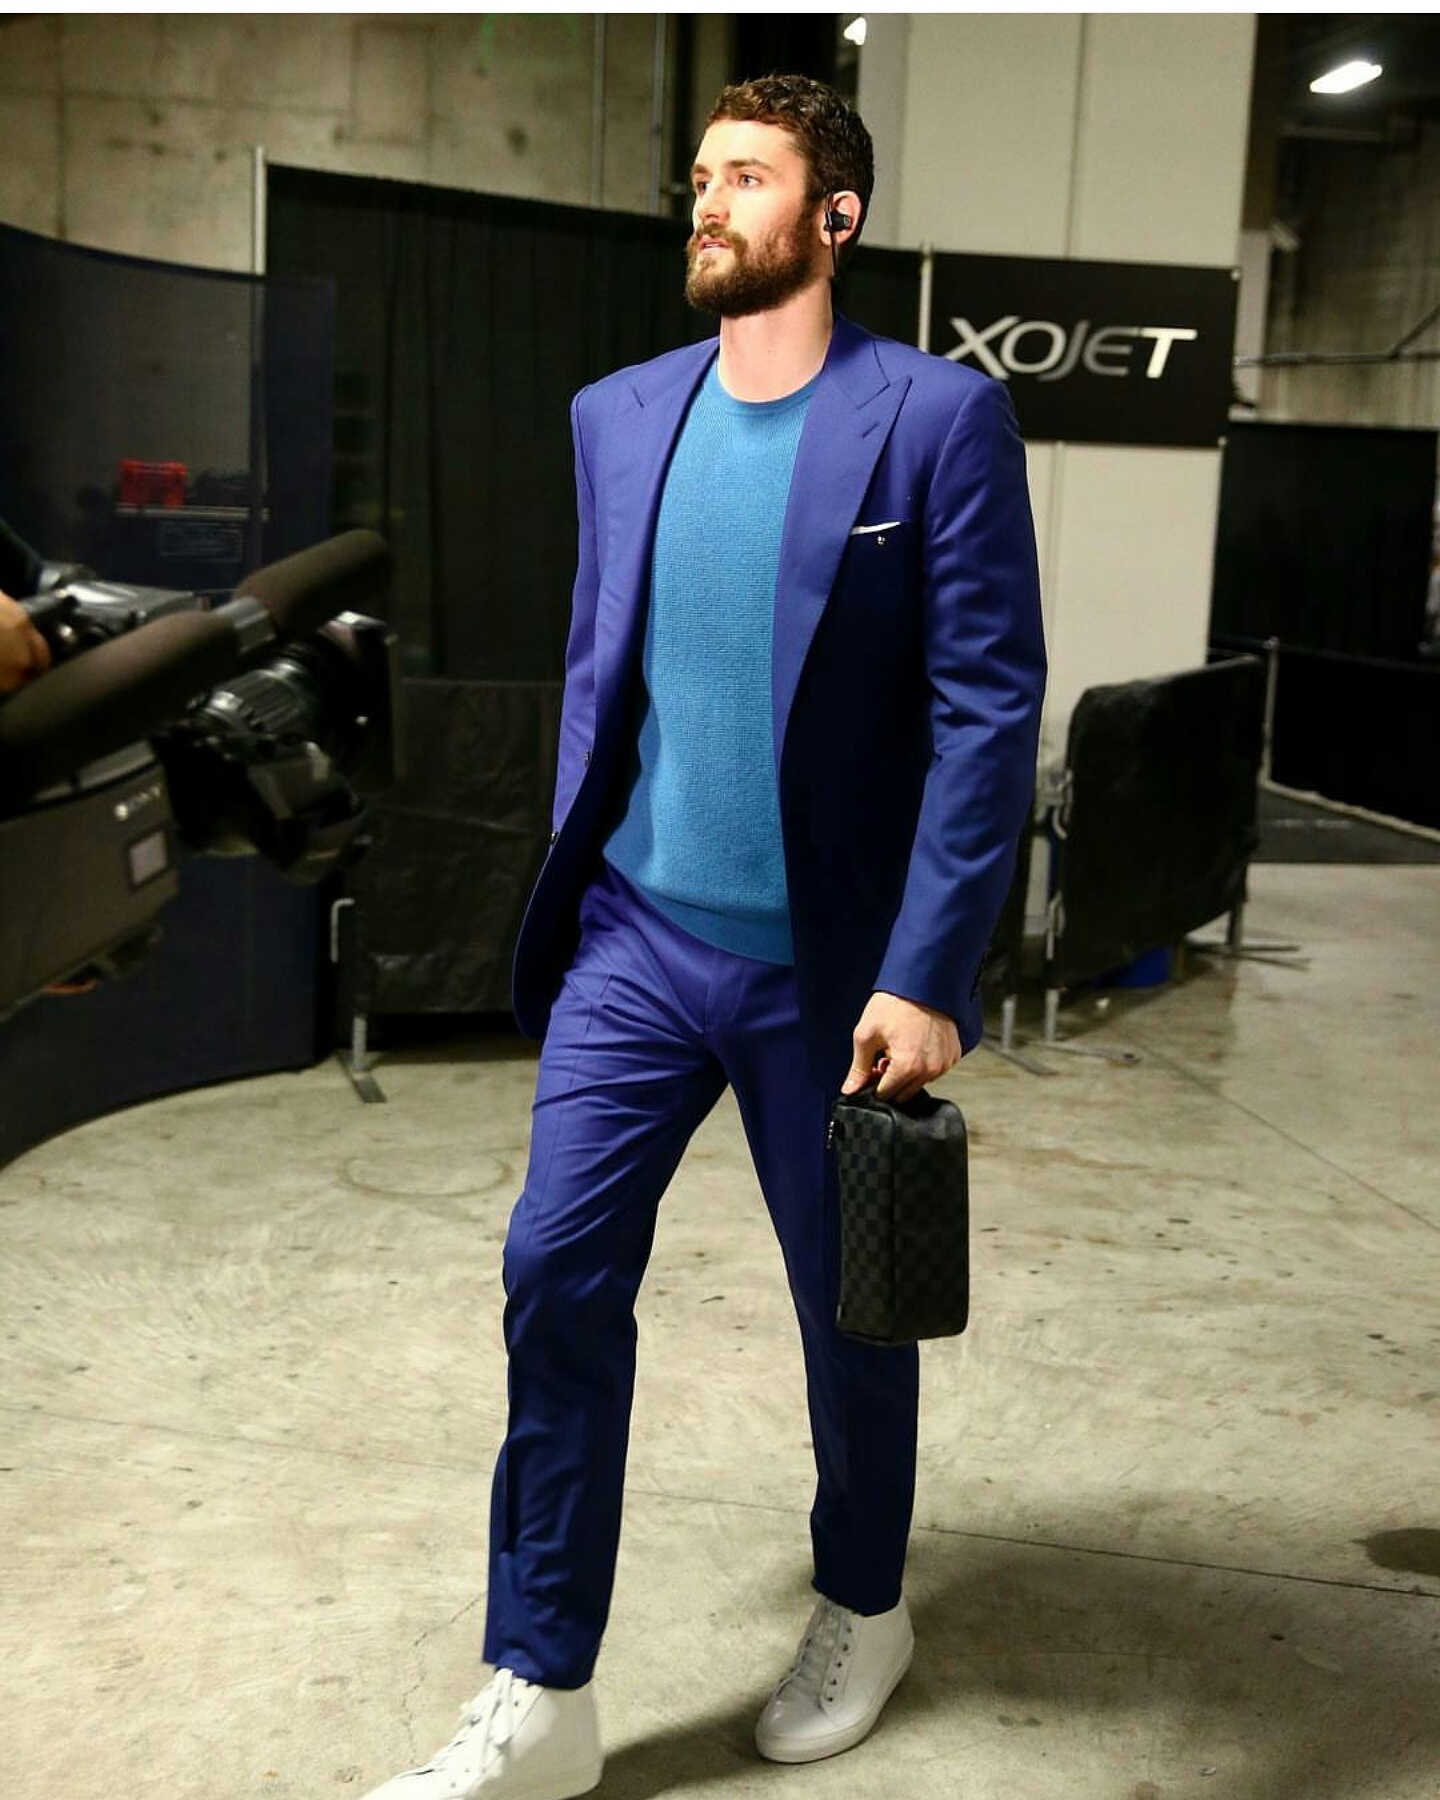 Kevin-Love-Ralph-Lauren-suit-2016-NBA-Finals